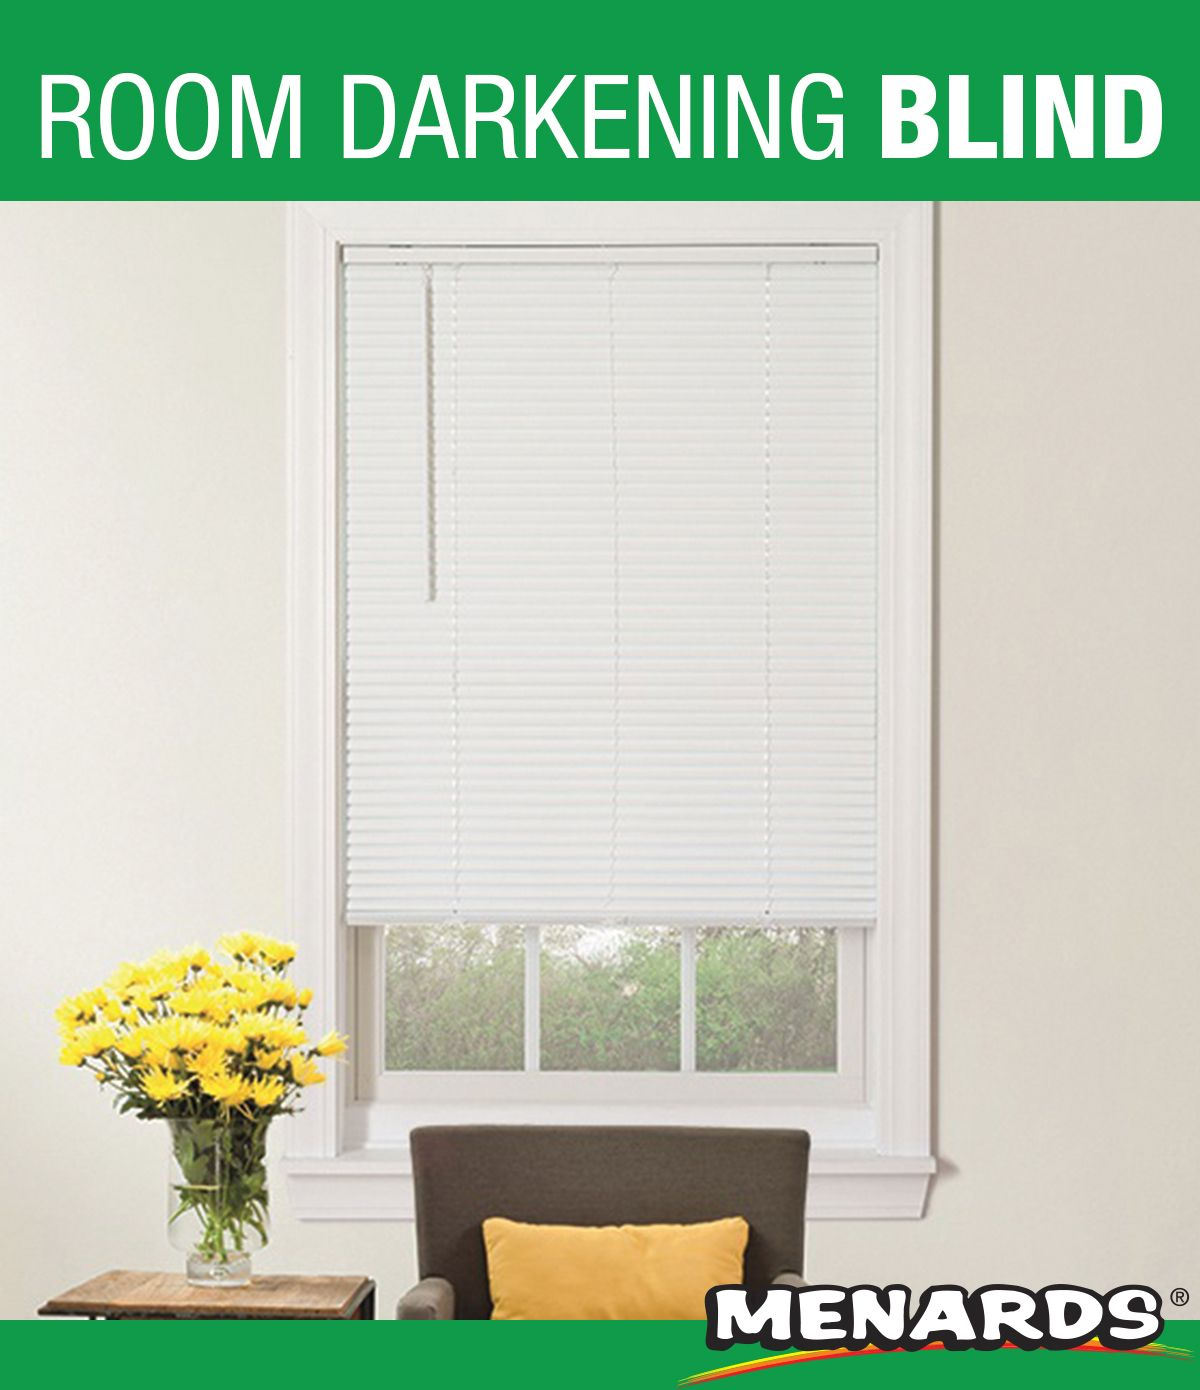 Window Images Aluminum Blinds Have Durable Room Darkening 1 Slats For Privacy And Light Control And A Curved Steel He Aluminum Blinds Room Darkening Blinds